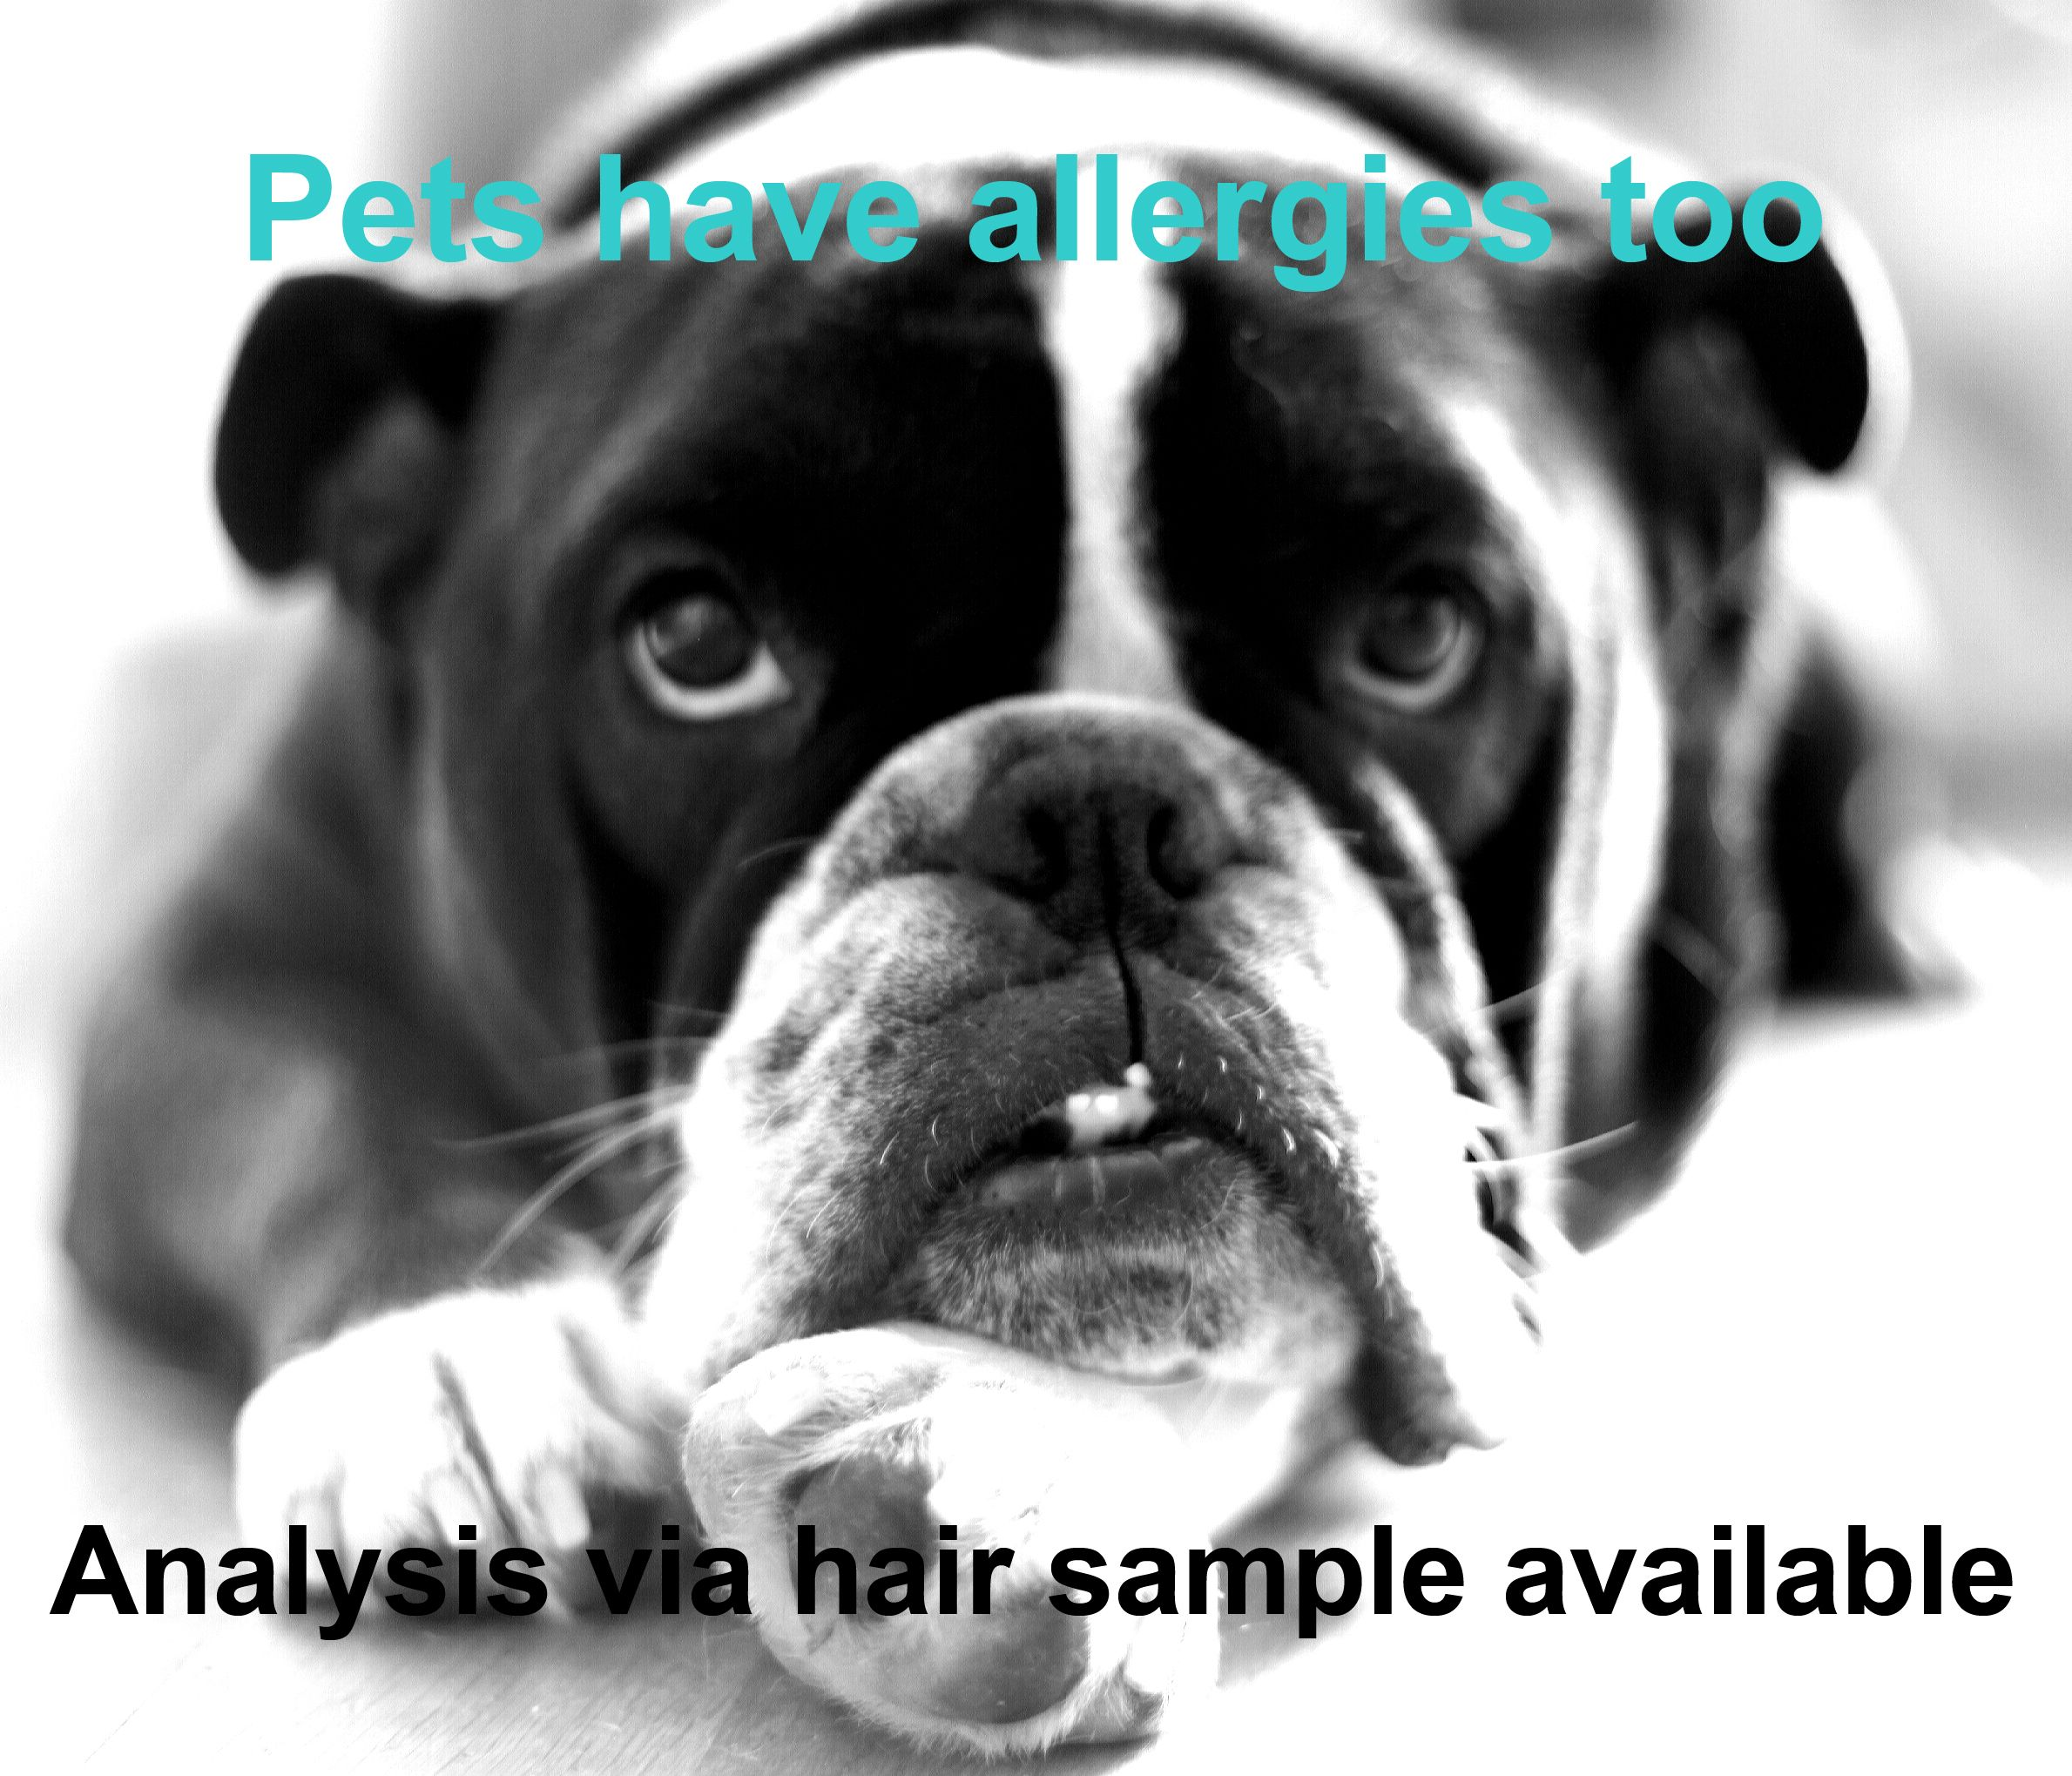 Pin by Andy Manning on Dogs and Products | Pinterest | Pet products ... | Dog Food Allergy Test Saliva